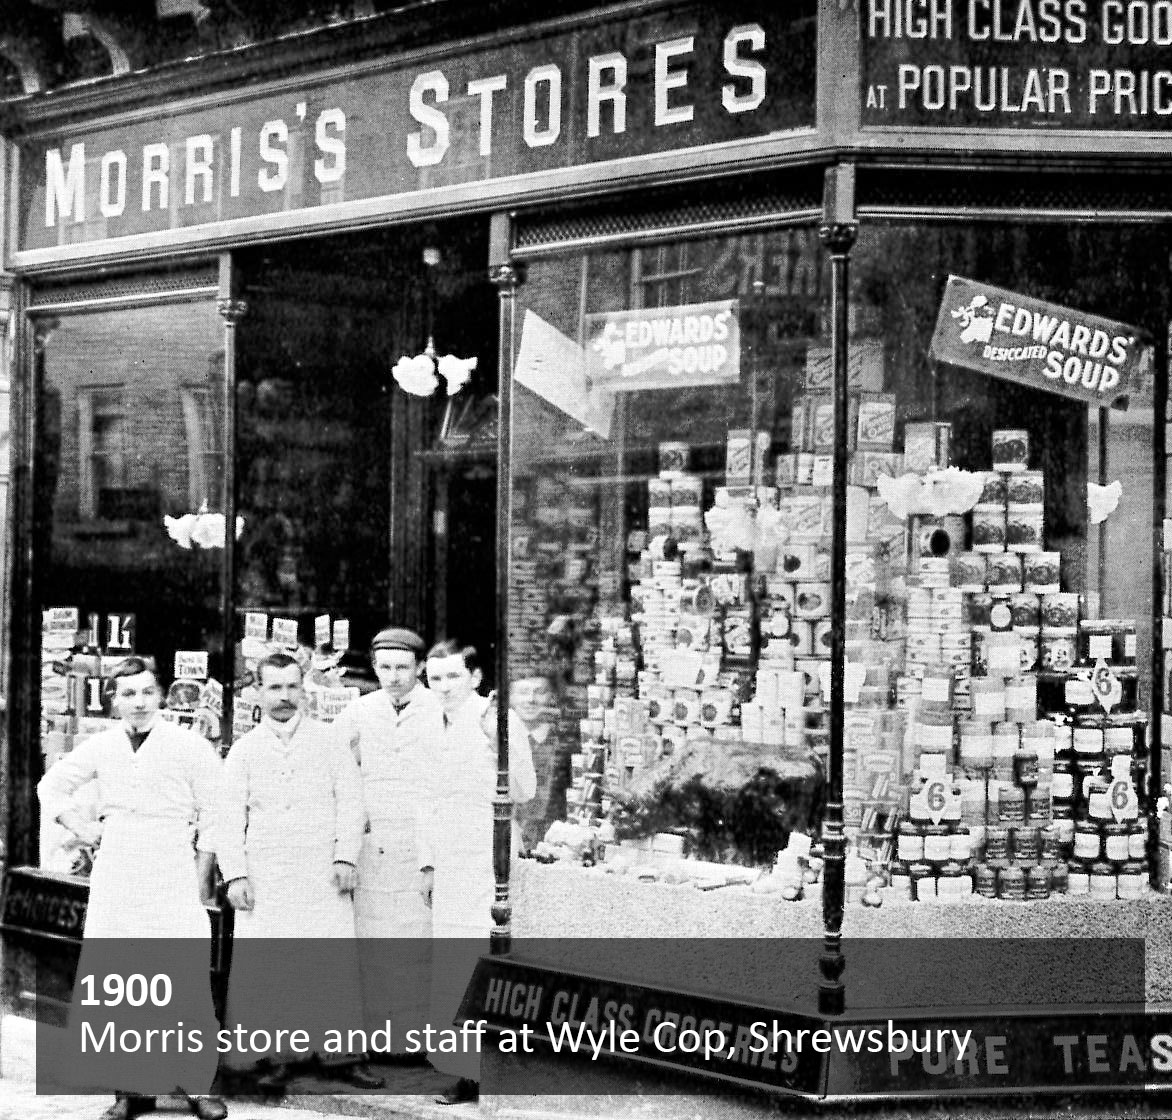 Morris store and staff at Wyle Cop, Shrewsbury